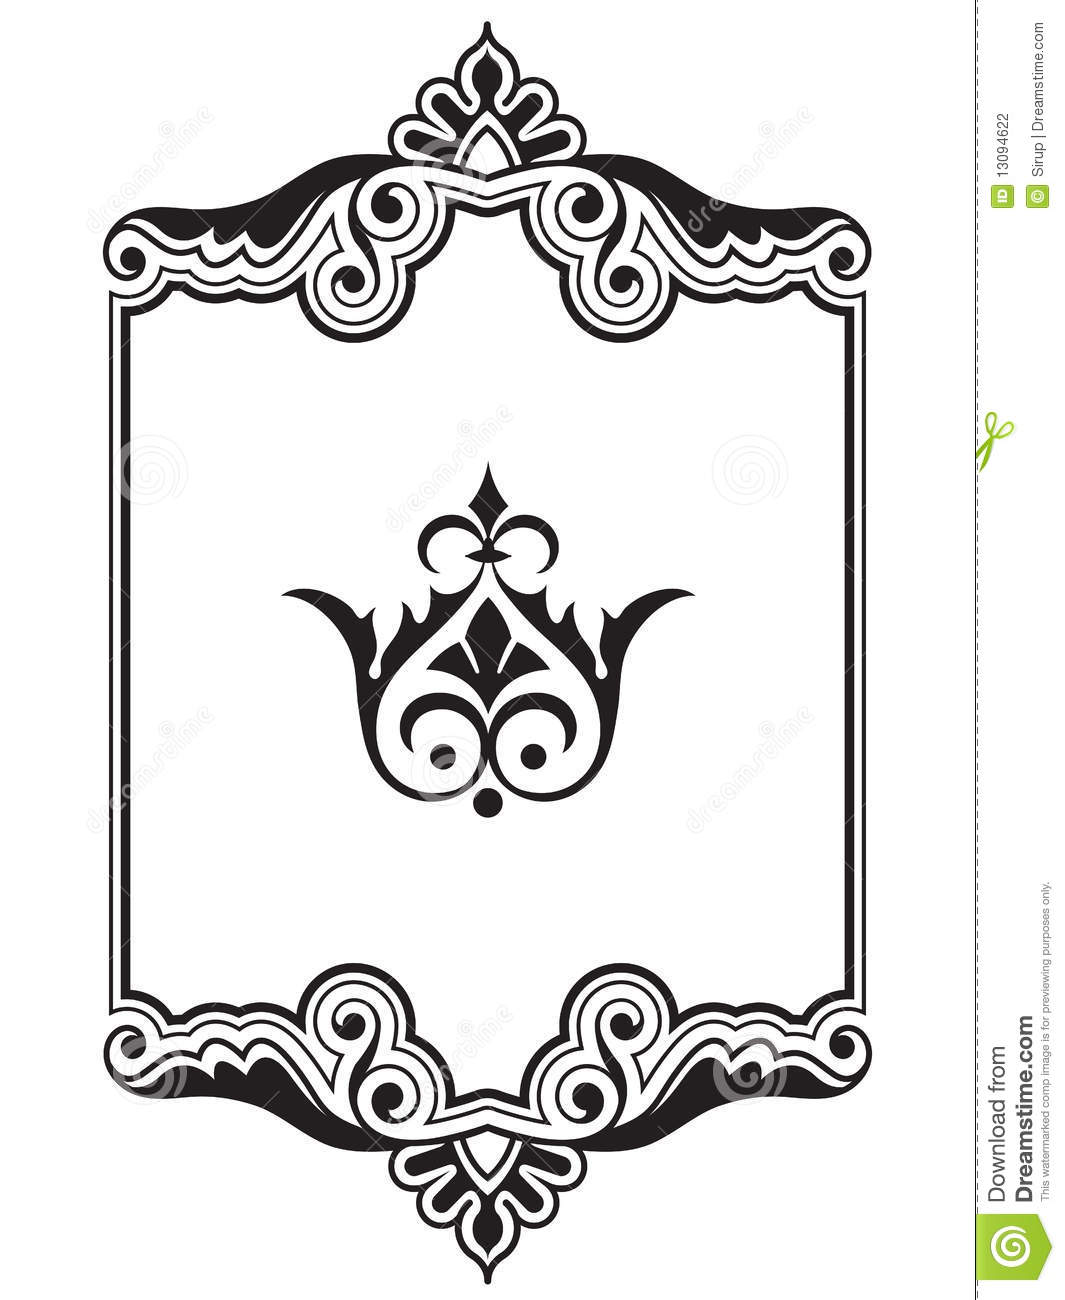 map plan with Stock Photography Ornamental Border Frame Design Element Collection Image13094622 on Stock Illustration Crosshair White Background Gun Image55344575 in addition Royalty Free Stock Photo Plug Socket Image20870825 additionally Stock Illustration Business Office People Icon Set White Background Vector Image55803172 as well Royalty Free Stock Image Tatoo Design Image3086426 furthermore Stock Illustration Hand Lettering Alphabet Modern Calligraphy Vector Image65193211.